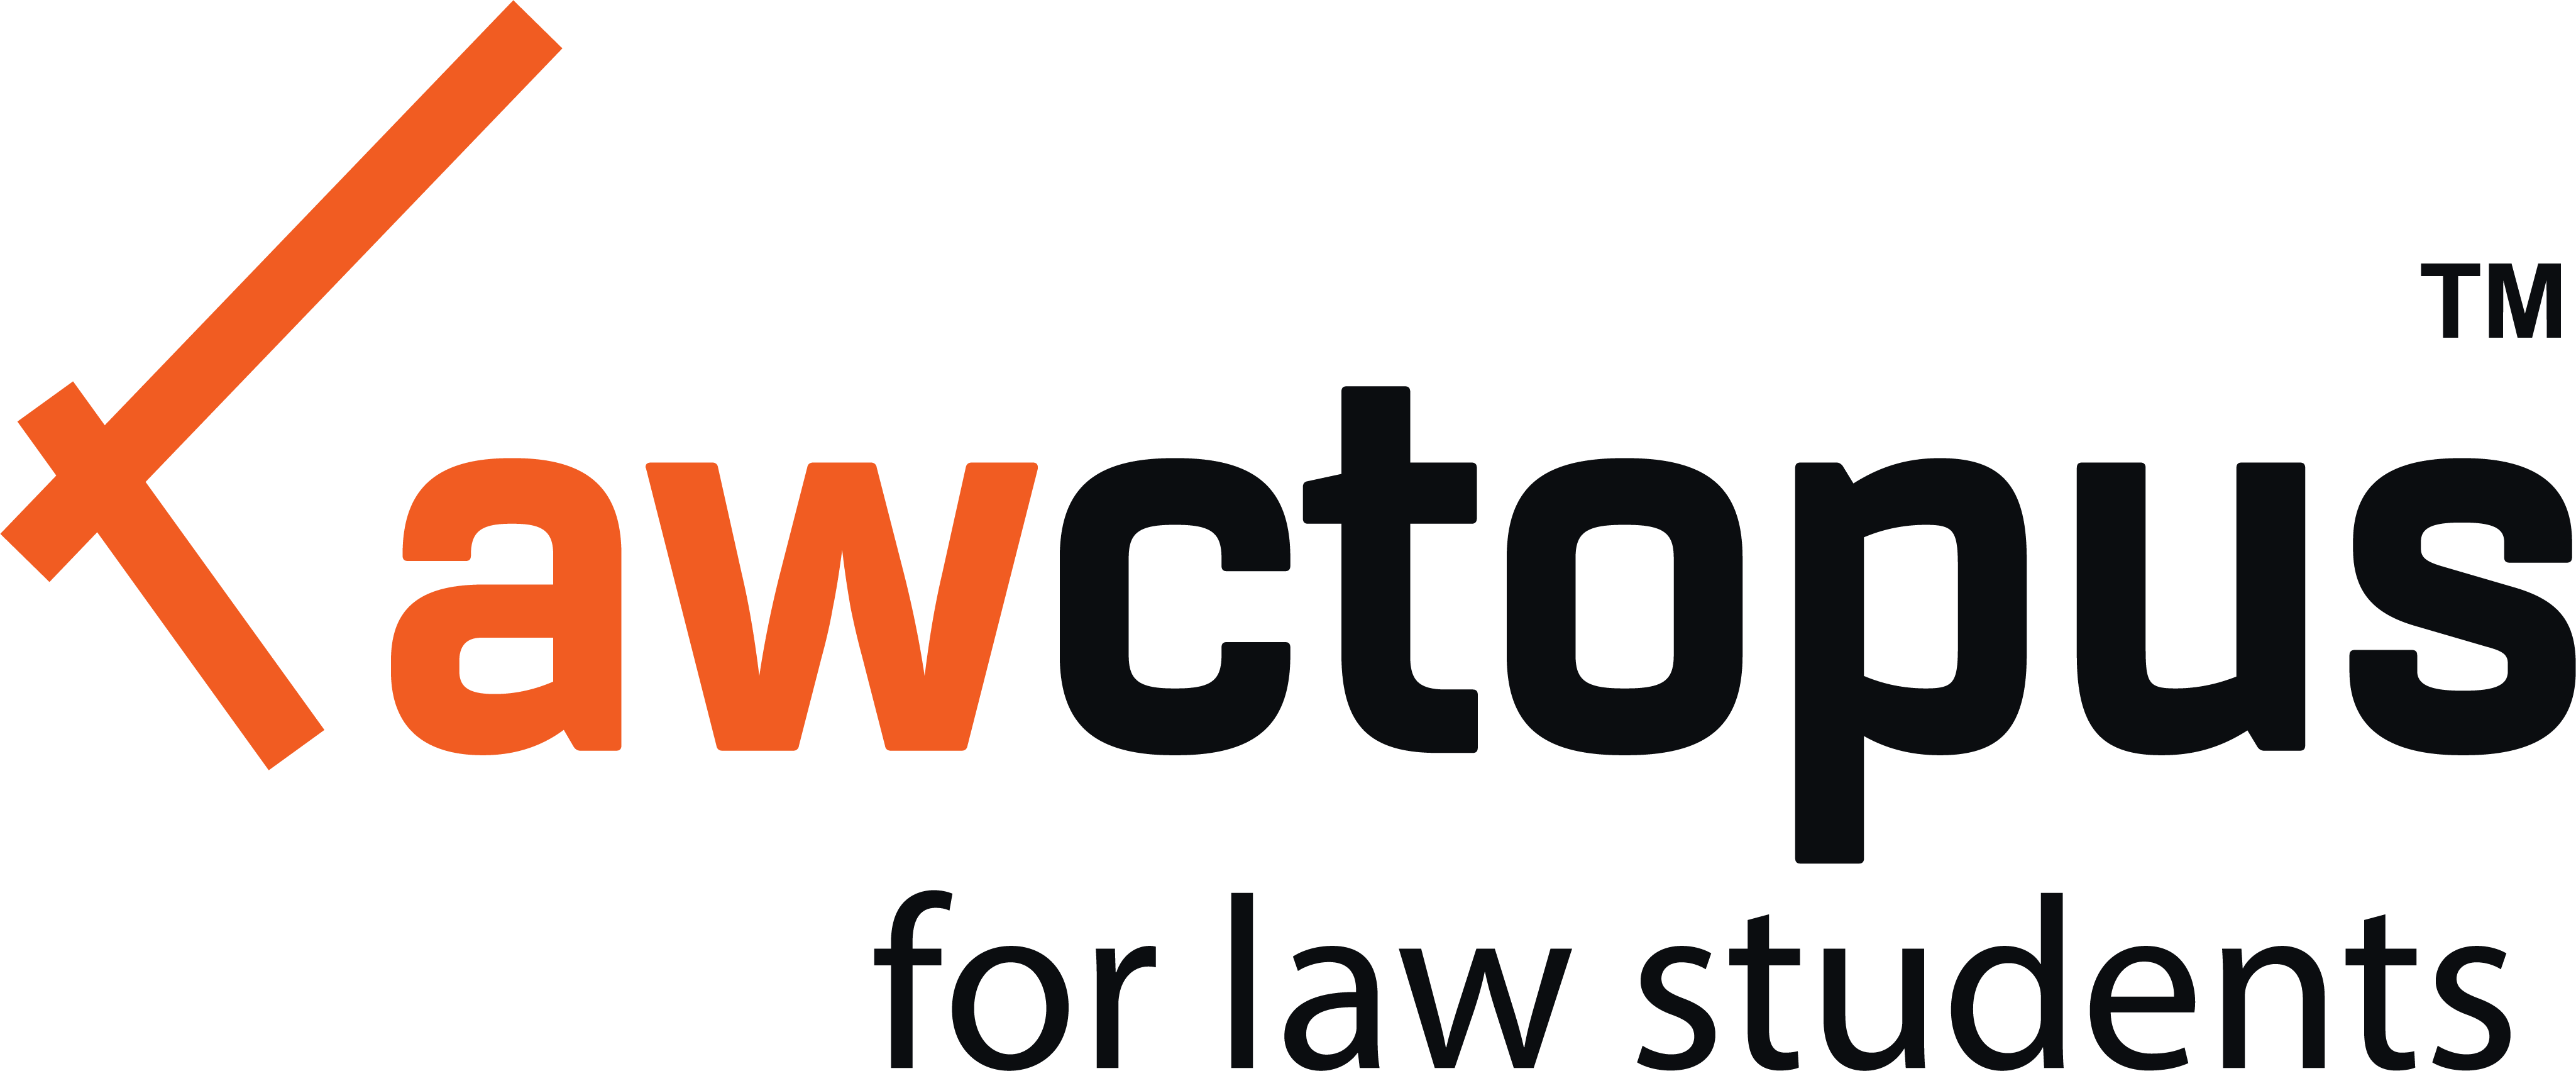 lawctopus freelancer jobs